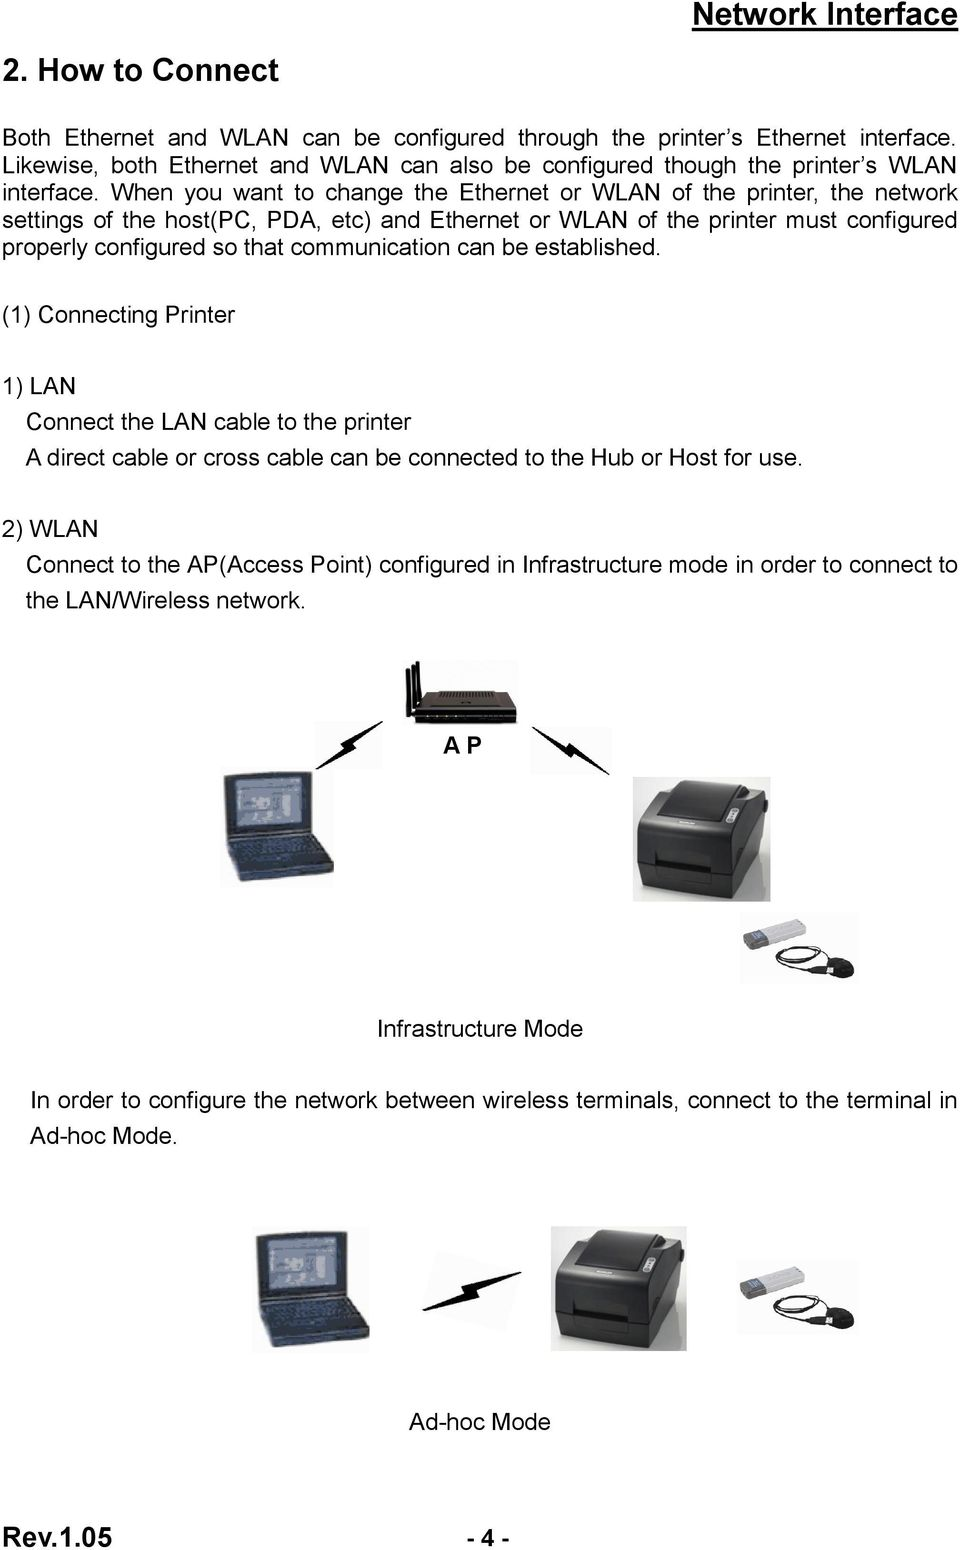 communication can be established. (1) Connecting Printer 1) LAN Connect the LAN cable to the printer A direct cable or cross cable can be connected to the Hub or Host for use.